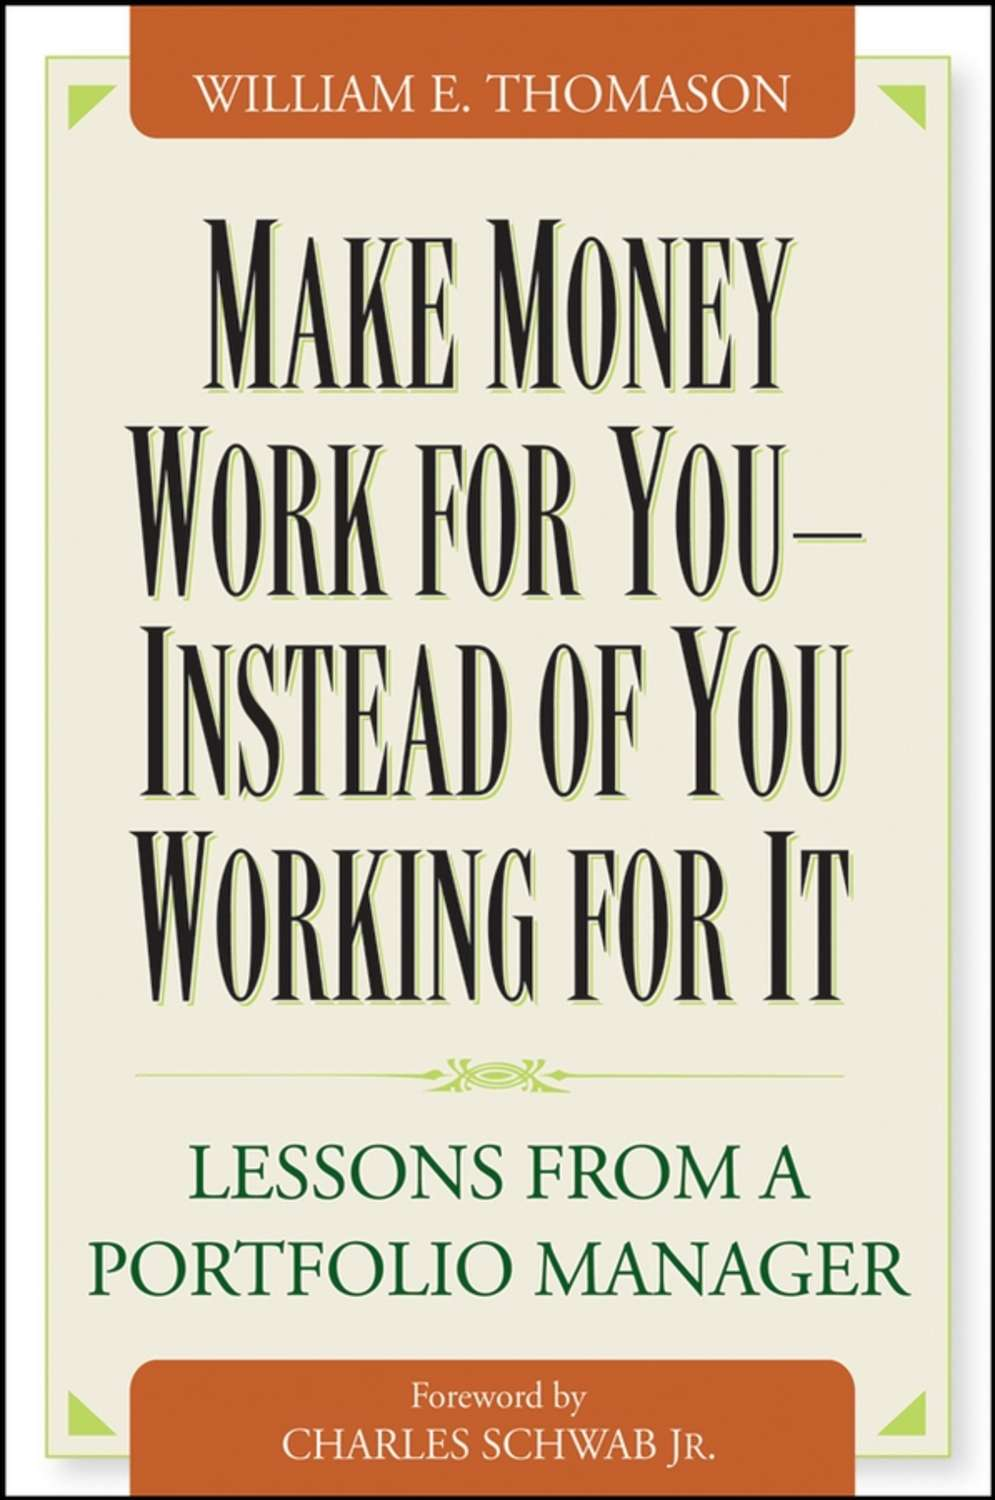 make money work for you The penny hoarder is the premier destination for all things making money: traditional jobs, side gigs, work from home opportunities and career tips & advice.